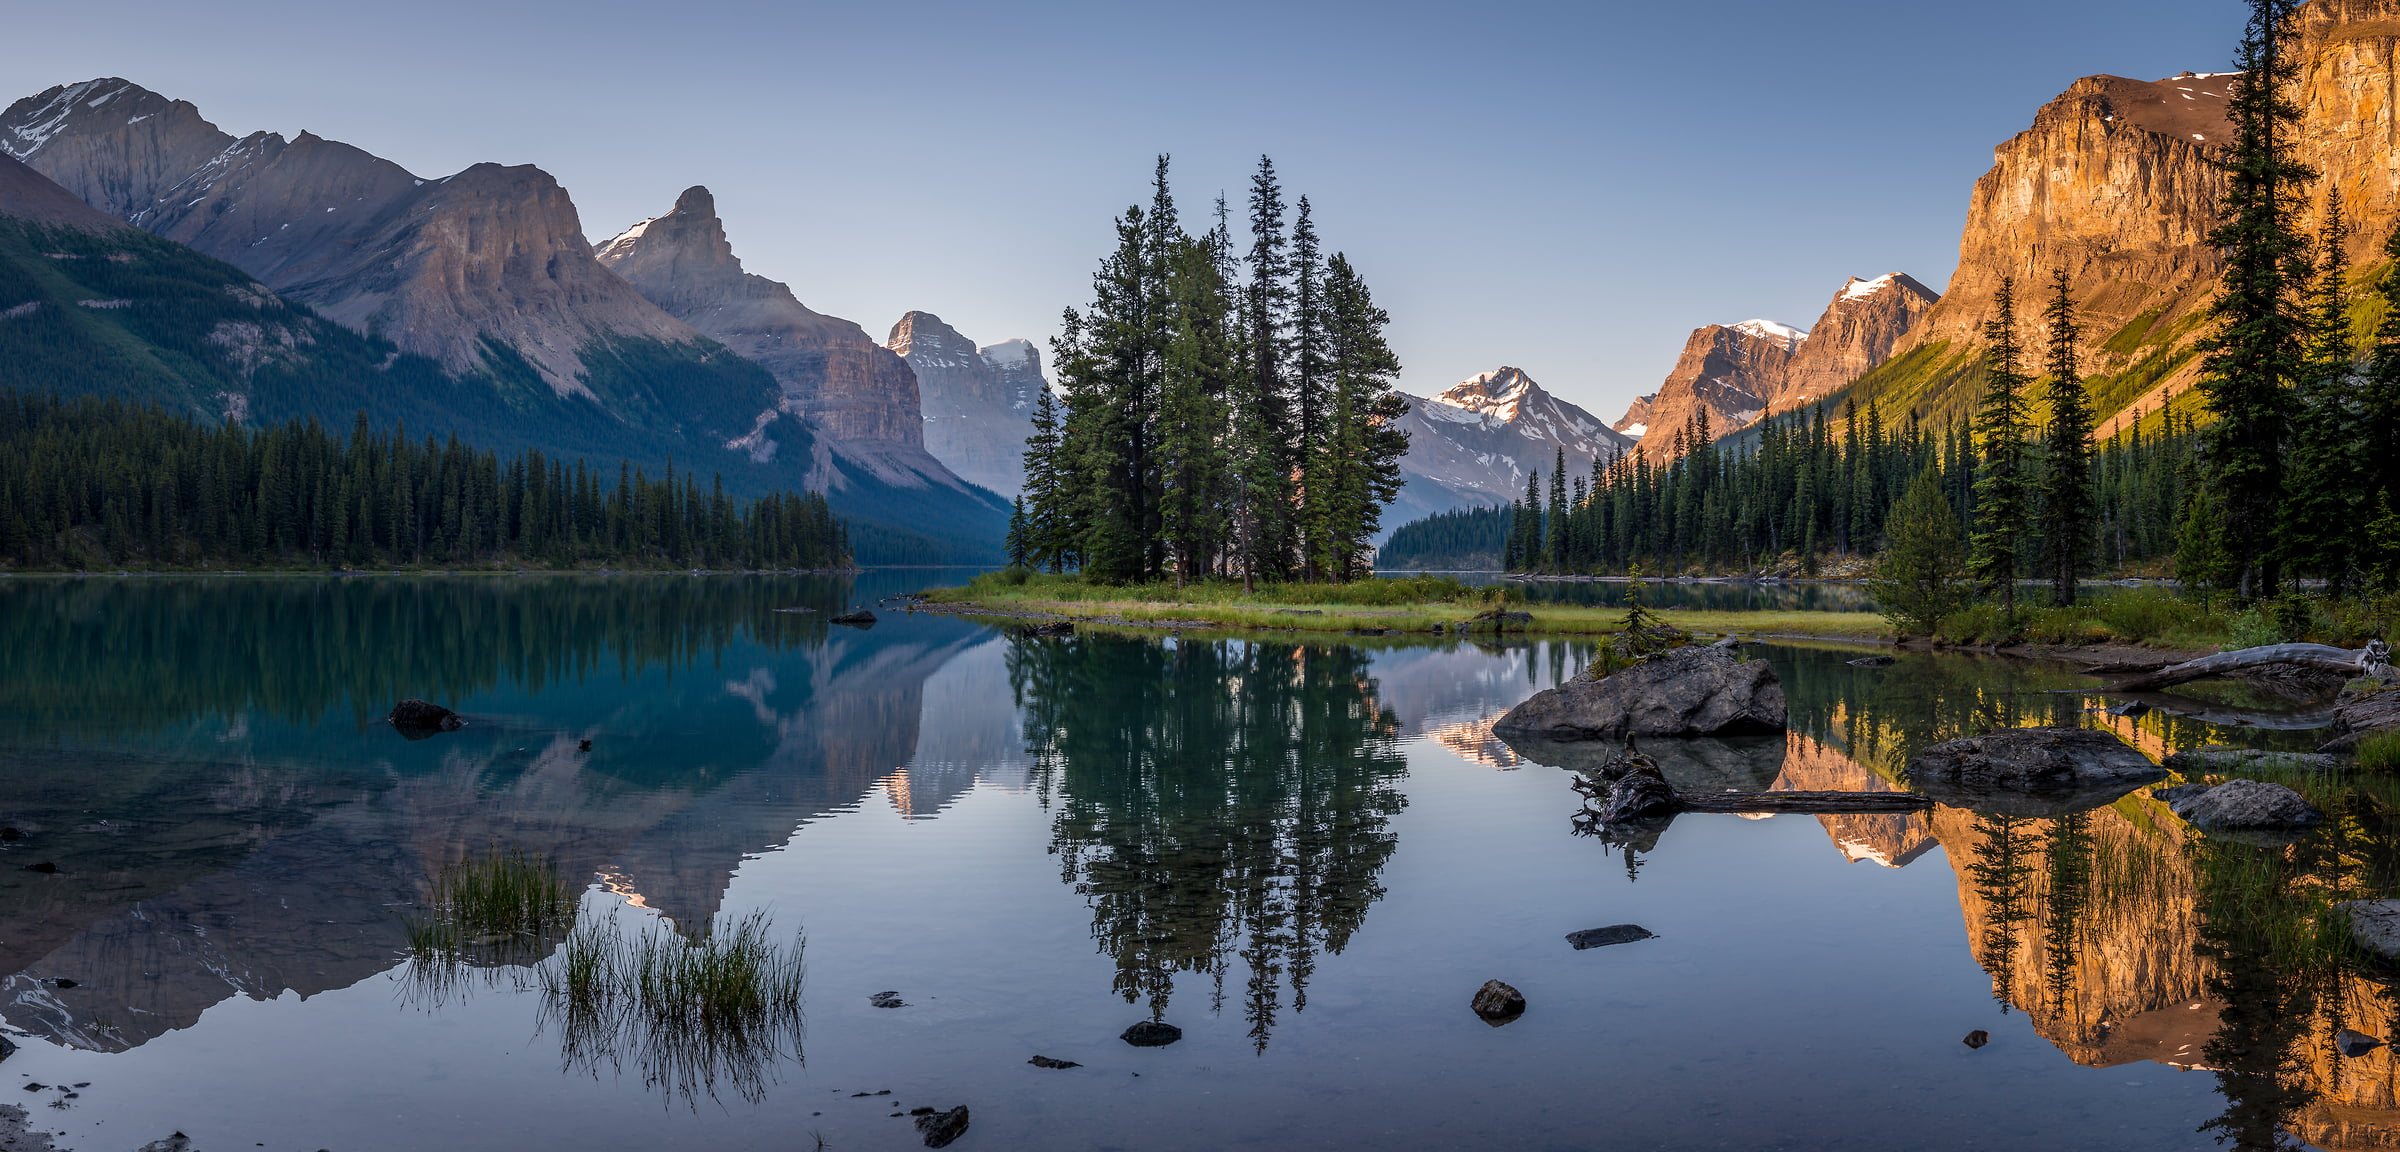 90 megapixels! A very high resolution, large-format VAST photo print of Maligne Lake, Jasper National Park, Canada; nature landscape photo created by Tim Shields